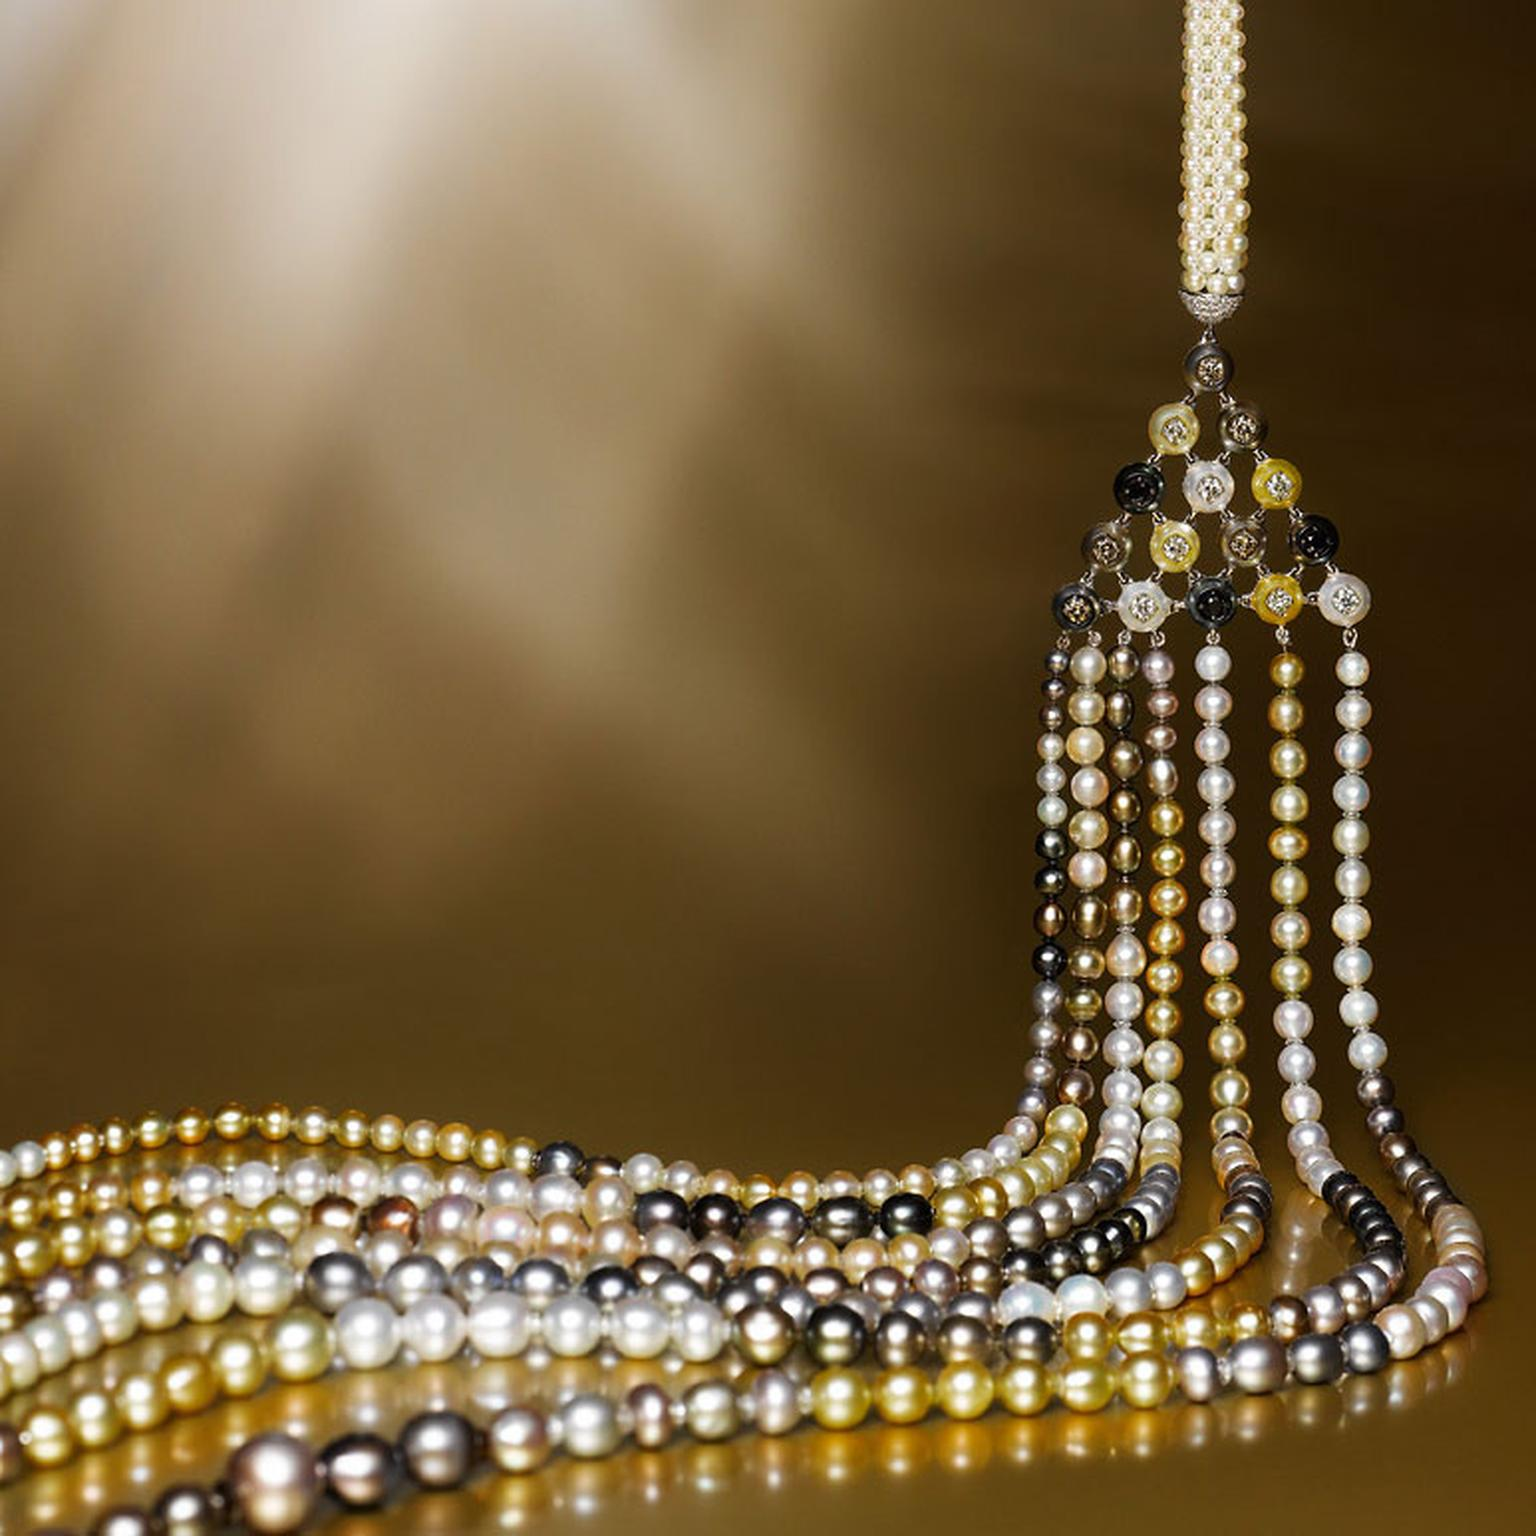 Edmond Chin seven strand pearl necklace with pearl, white diamond and platinum